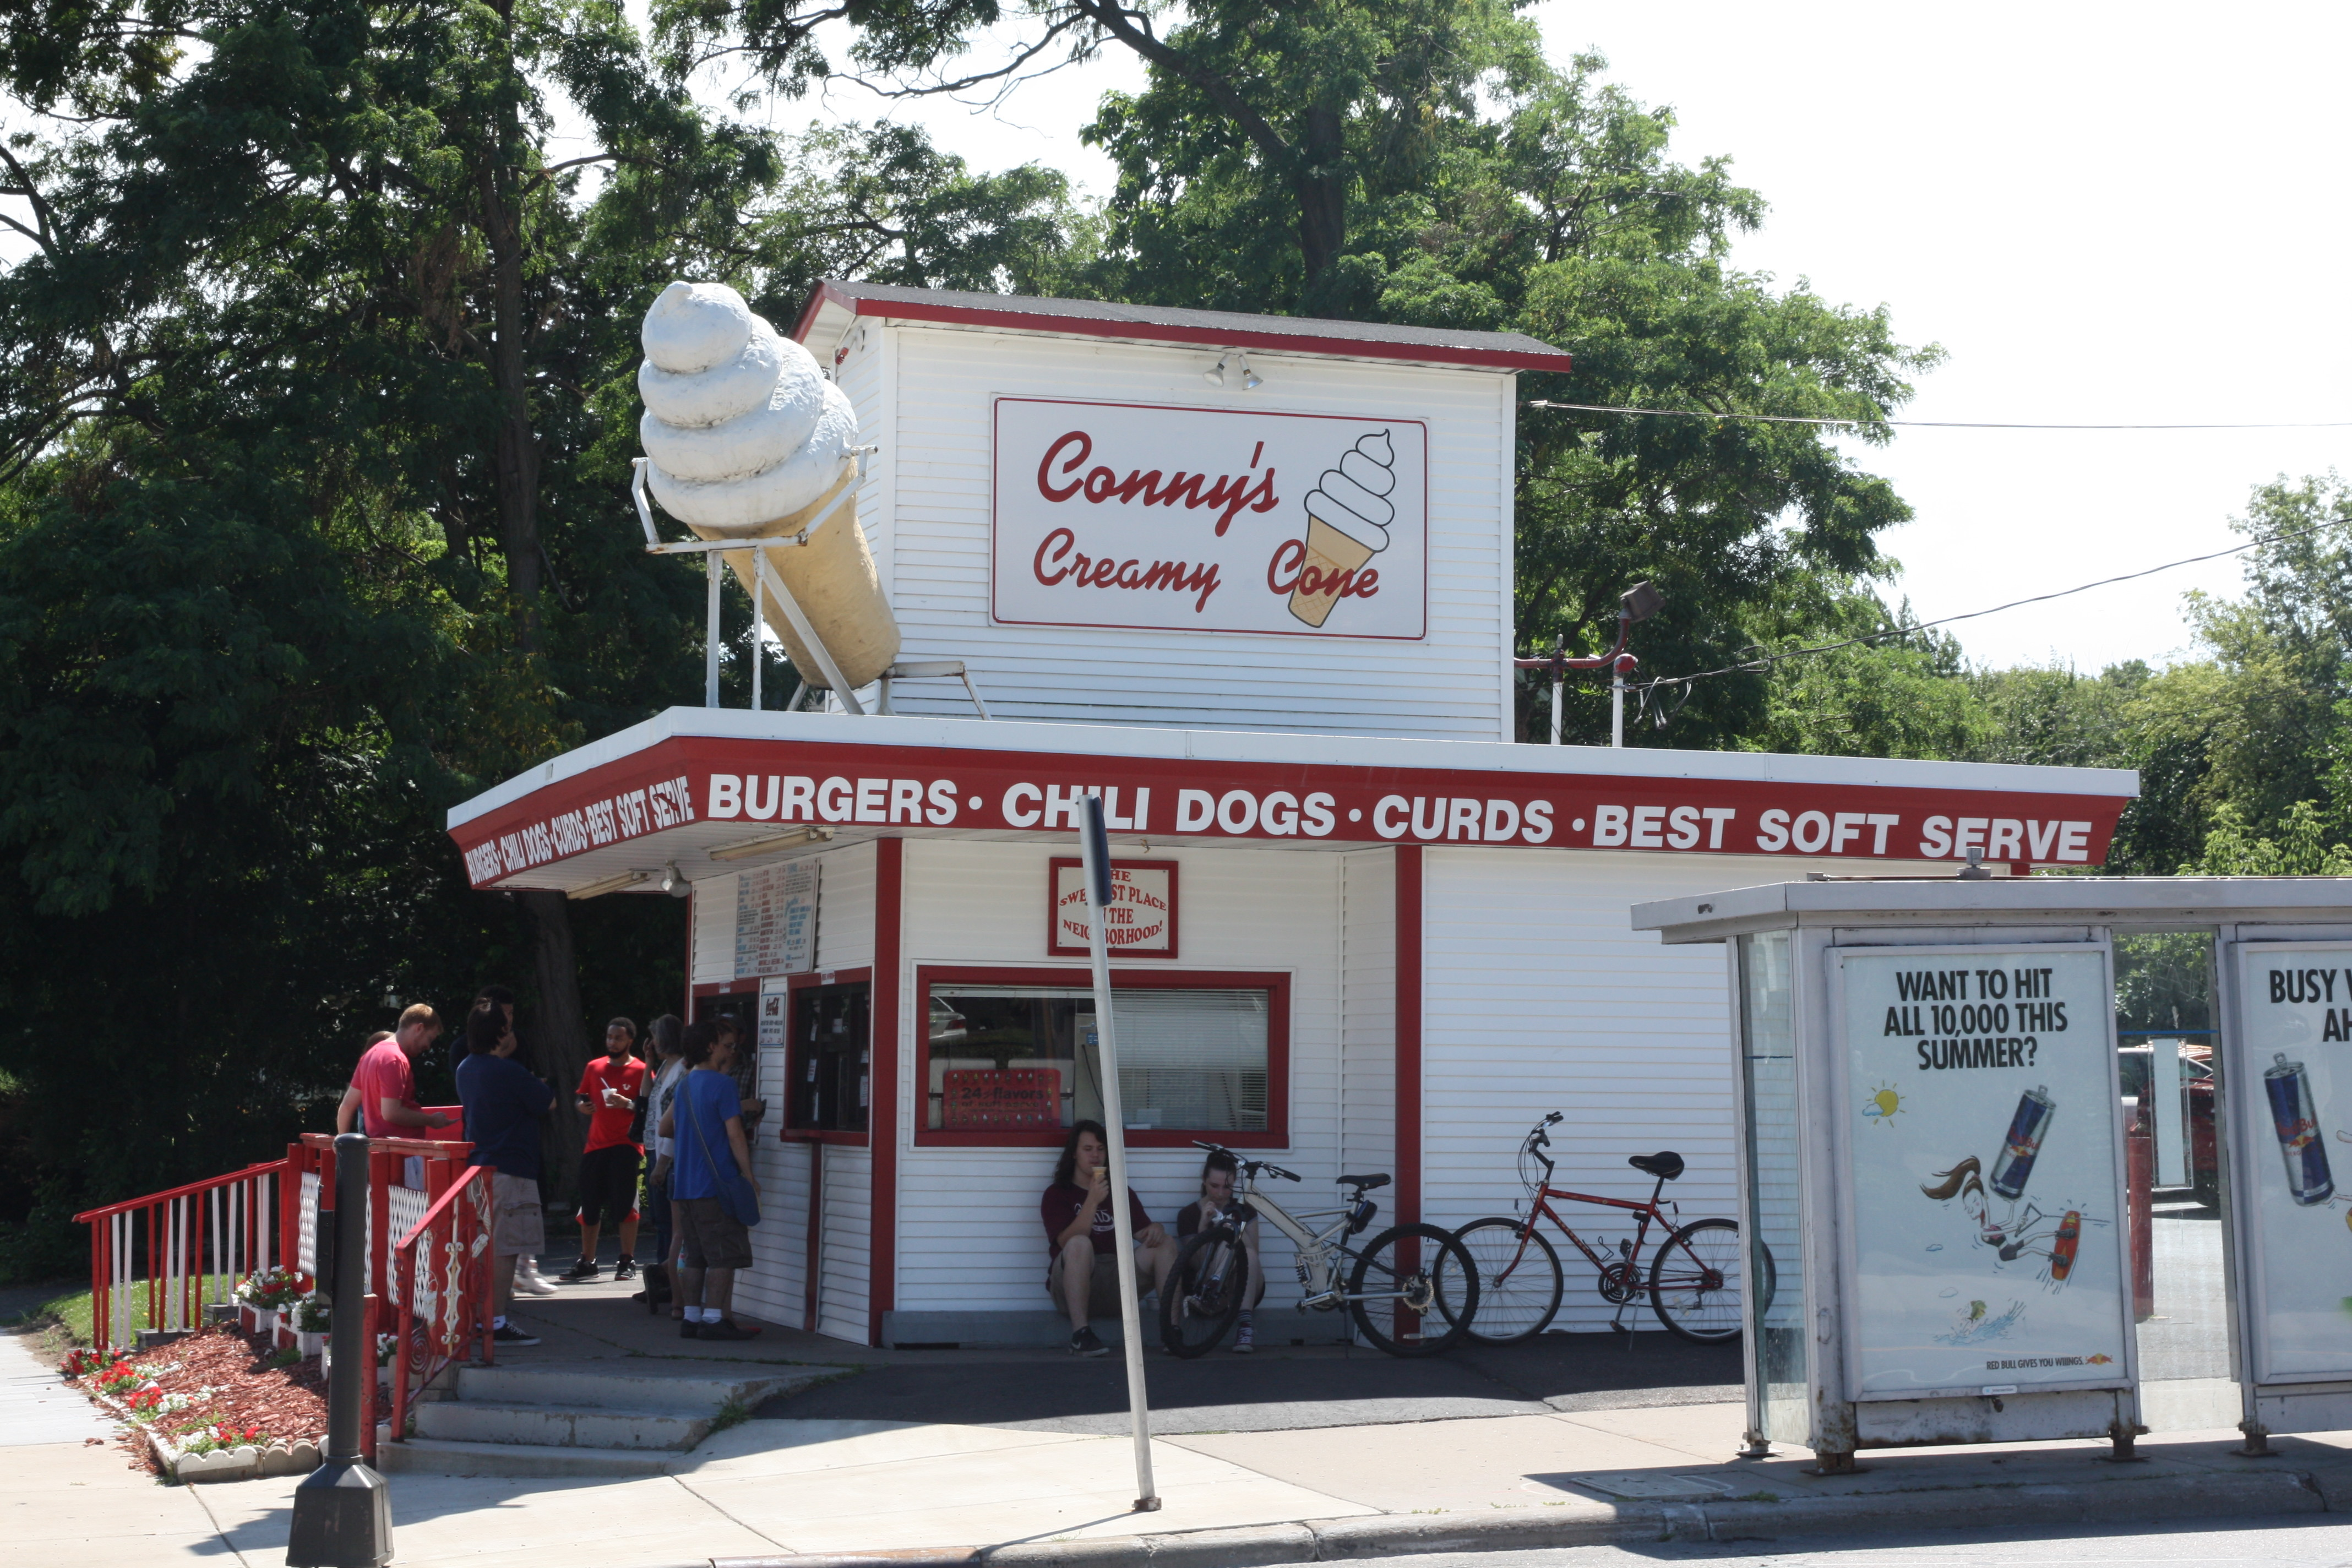 There seems to be a line all summer at Conny's Creamy Cone.